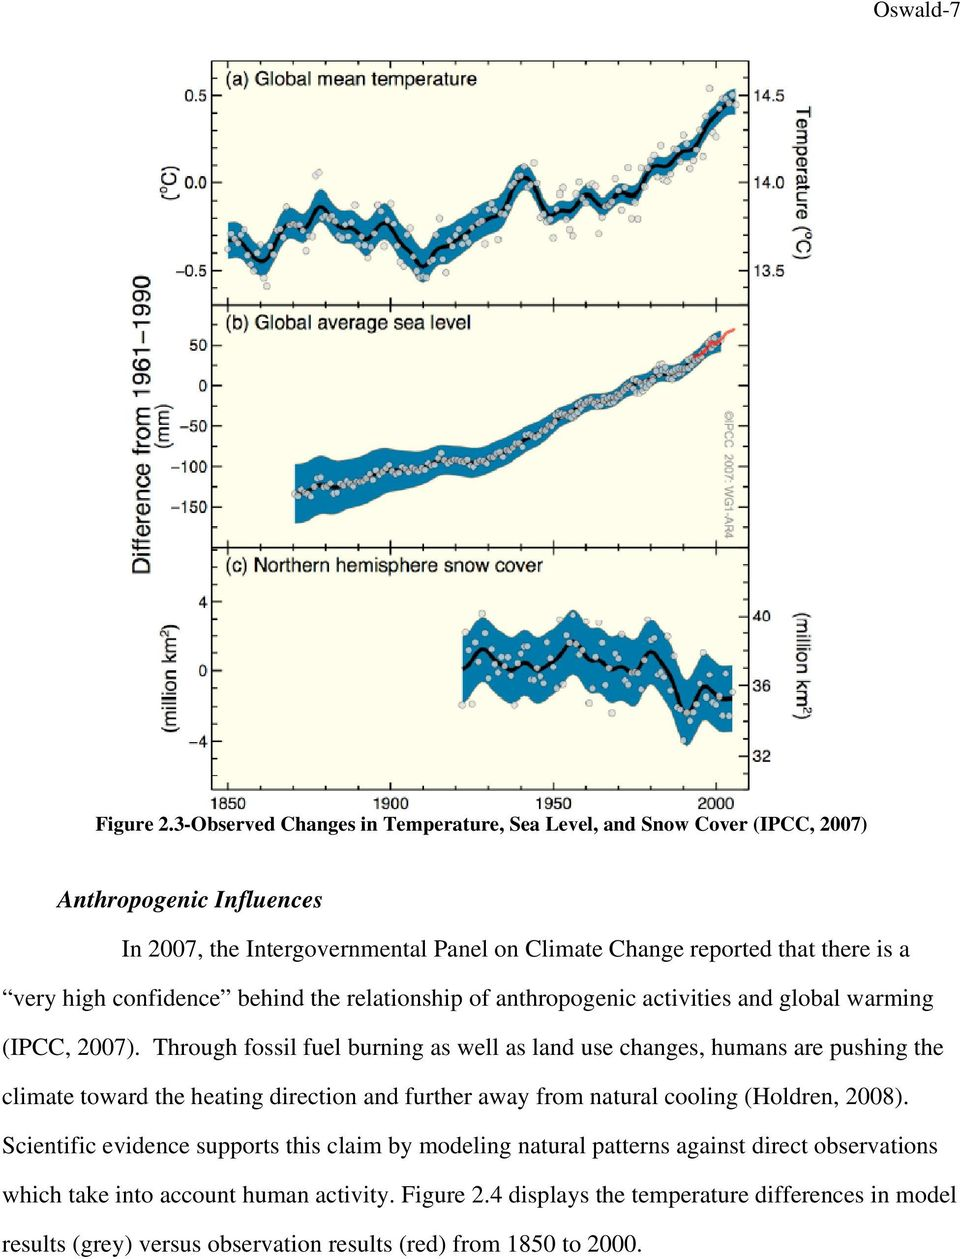 high confidence behind the relationship of anthropogenic activities and global warming (IPCC, 2007).